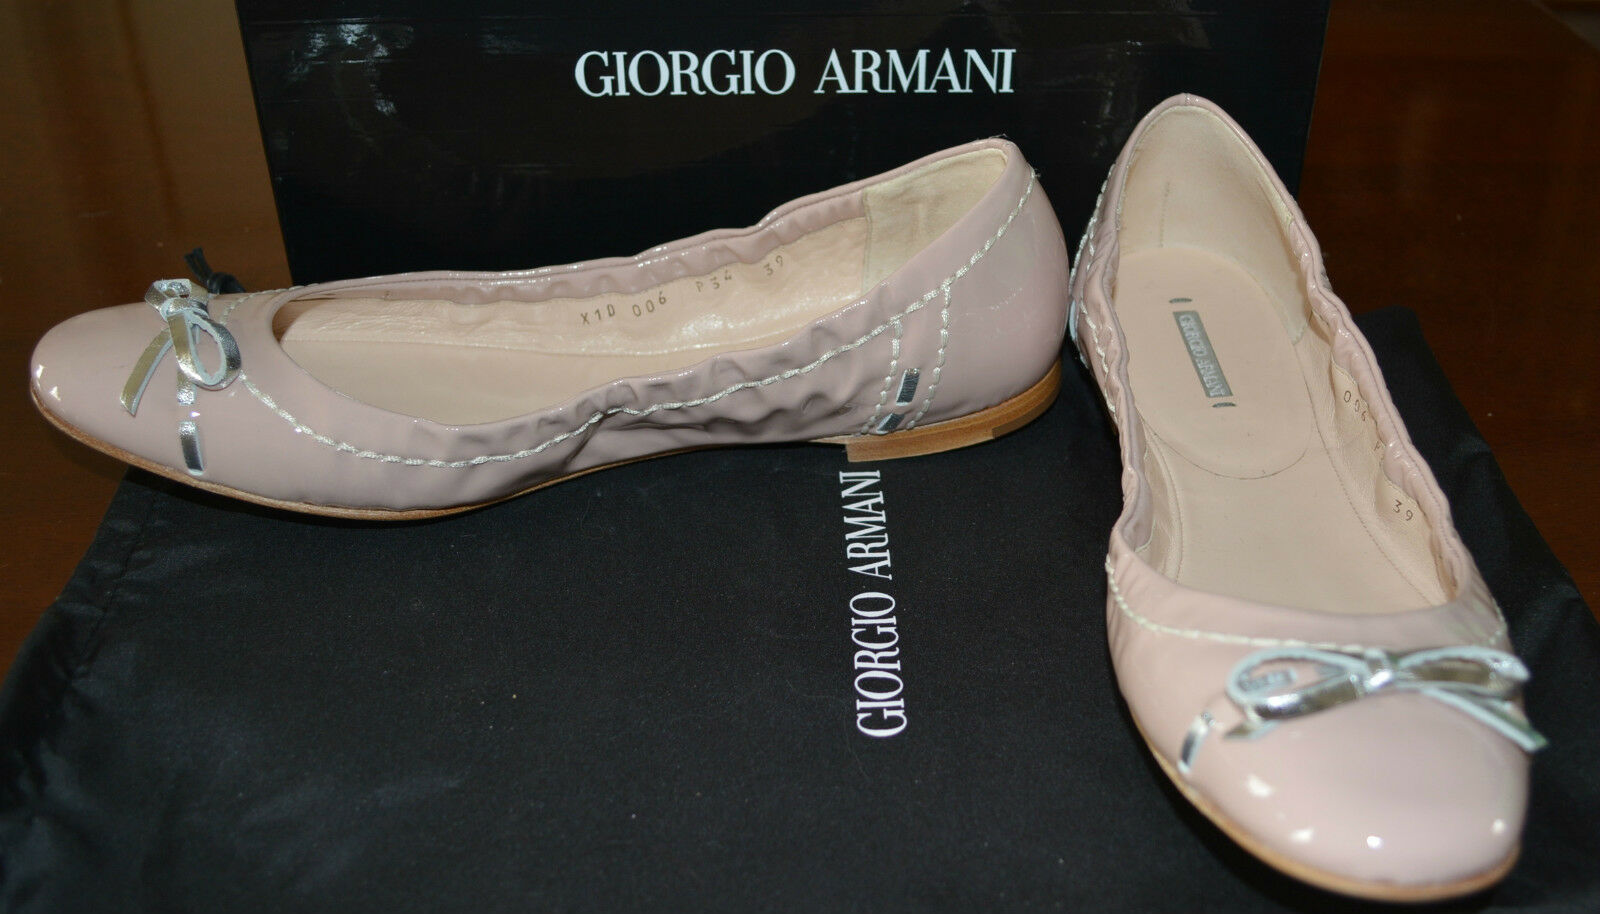 NIB GIORGIO PATENT ARMANI PATENT GIORGIO LEATHER FLATS SHOES  US 7 MADE IN ITALY $450 9a0309